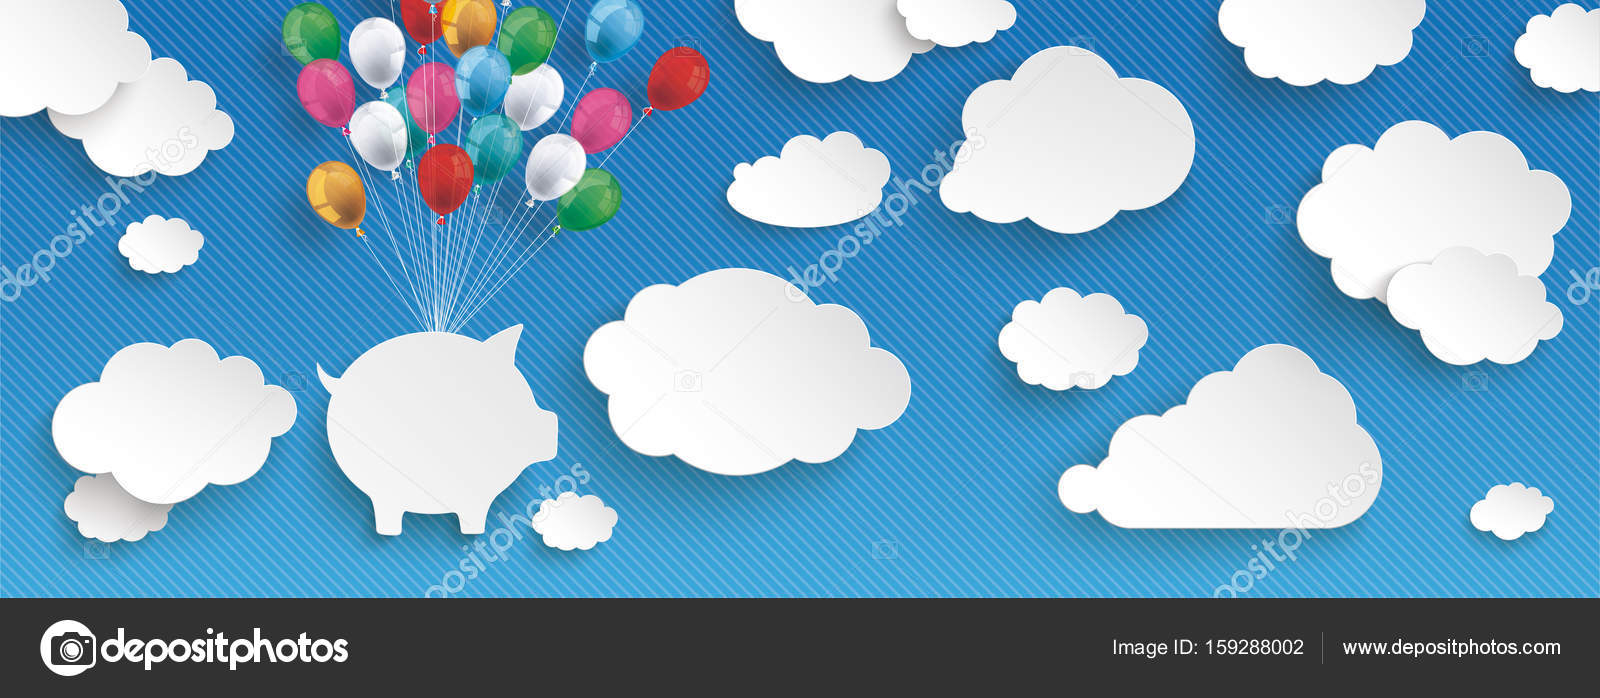 paper clouds striped blue sky balloons piggy bank header stock vector